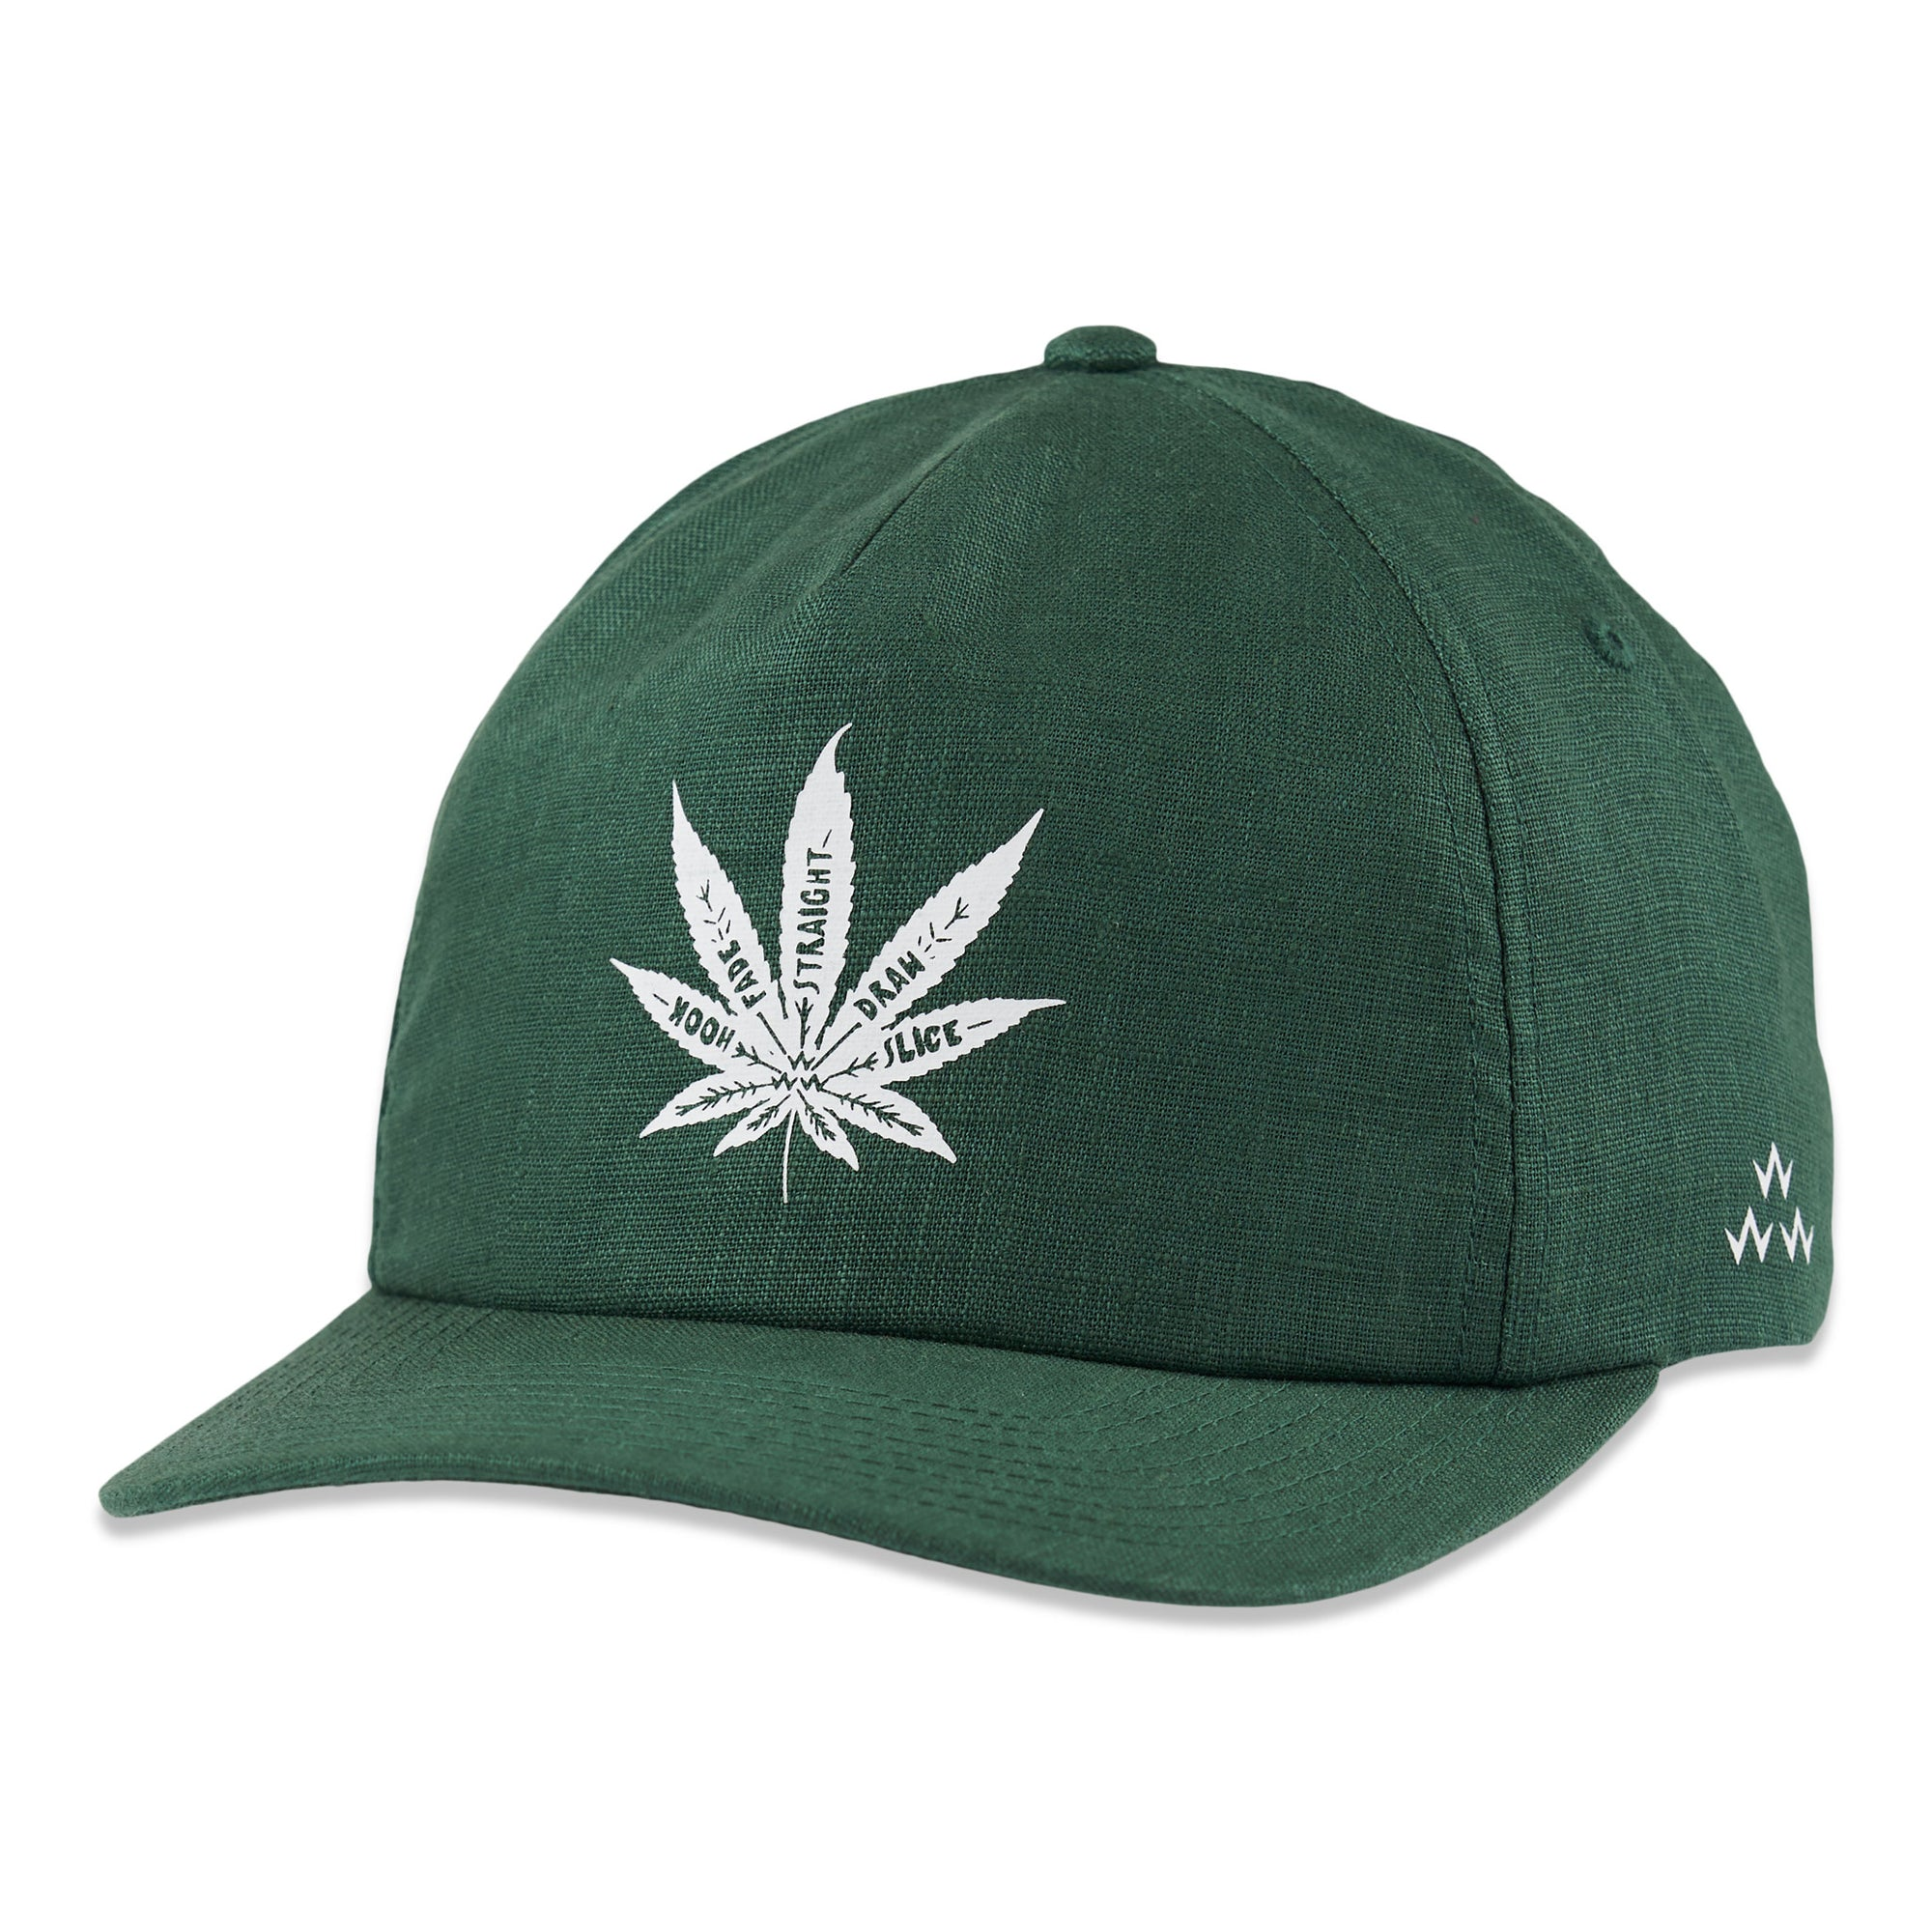 birds-of-condor-green-hemp-golf-shot-tracer-hat-cap-front